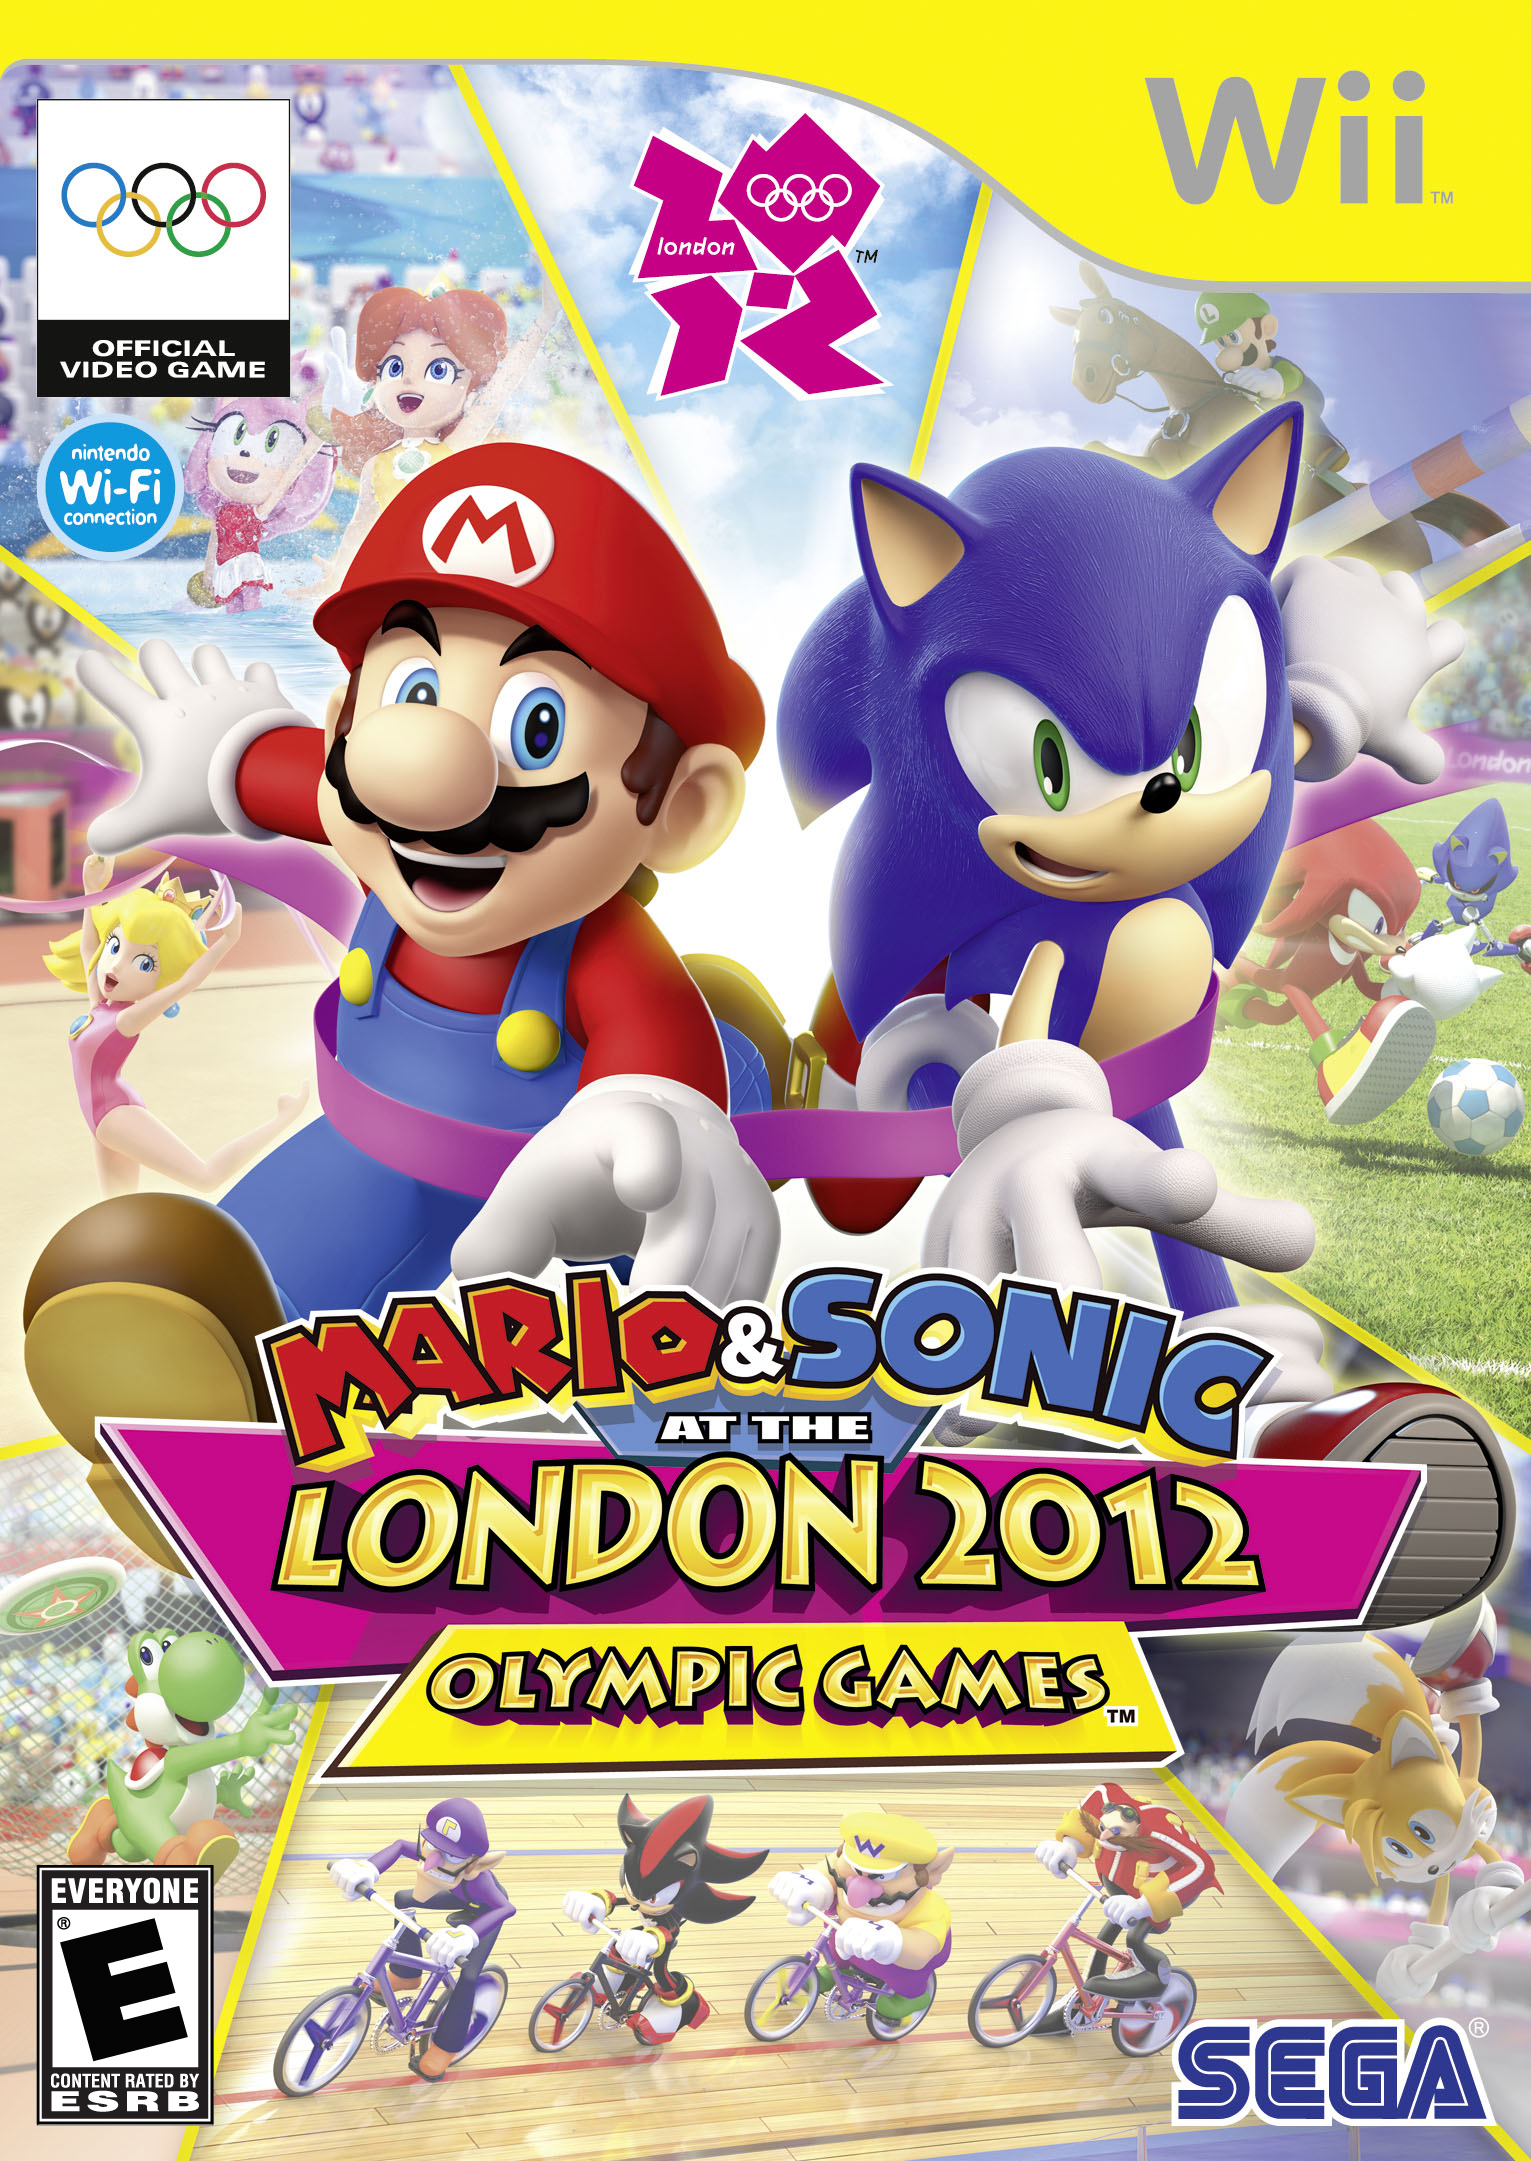 Mario & Sonic at the London 2012 Olympic Games (Wii) - Super